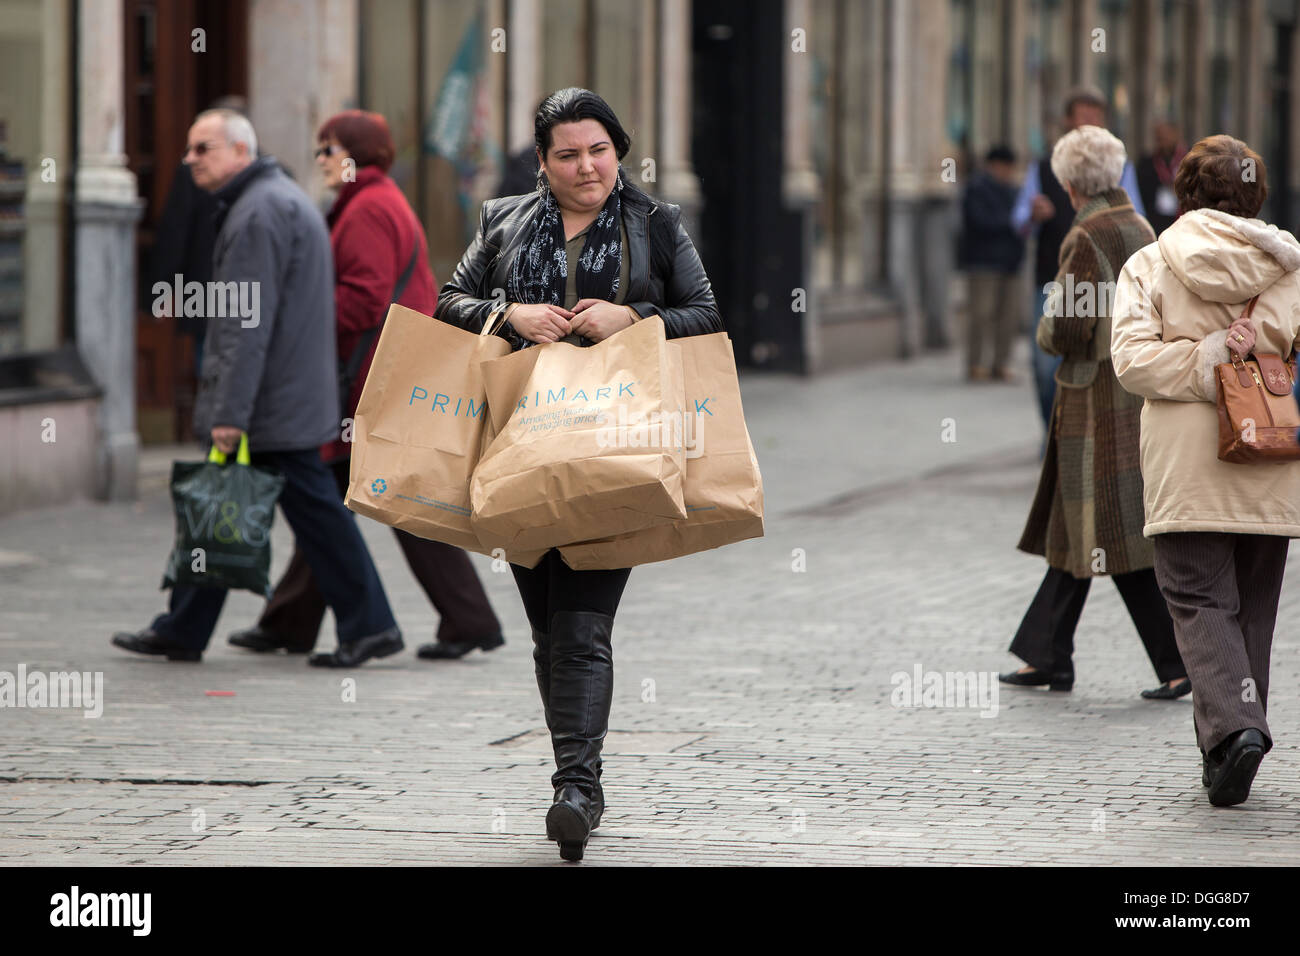 A woman shopper walks through Liverpool City Centre carrying Primark shopping bags - Stock Image